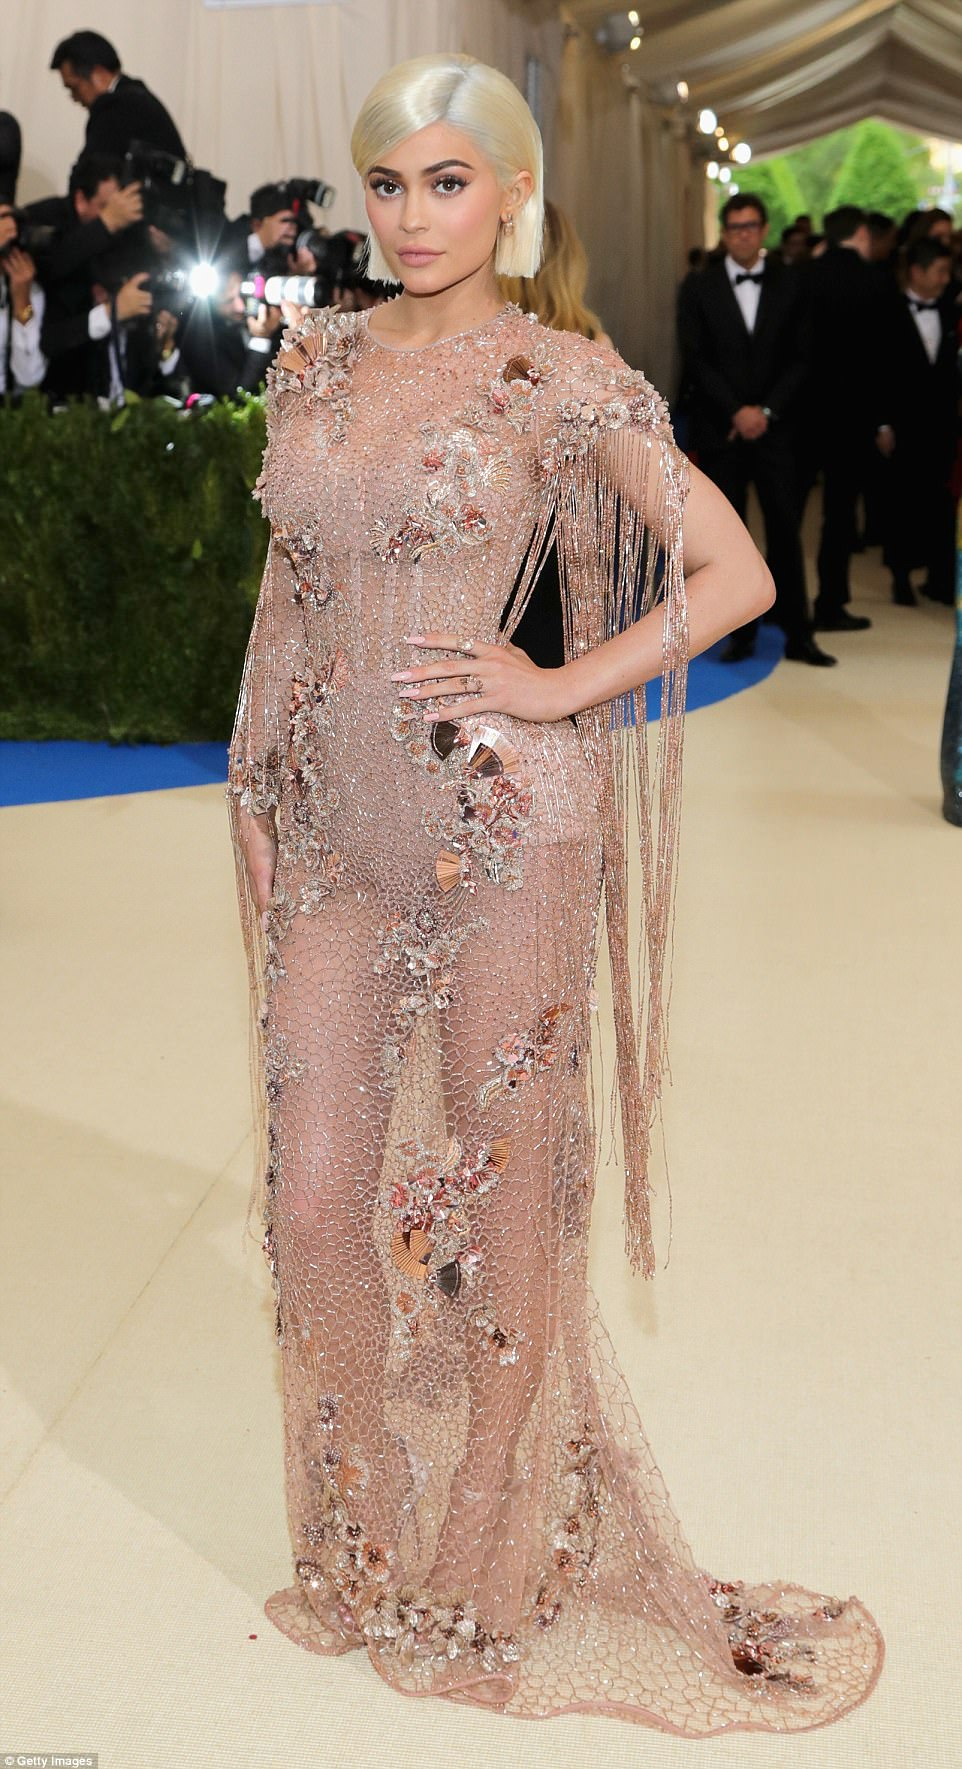 3FD292F500000578-4464268-Made_an_entrance_Kylie_Jenner_arrived_for_the_2017_Met_Gala_in_a-a-75_1493681388780